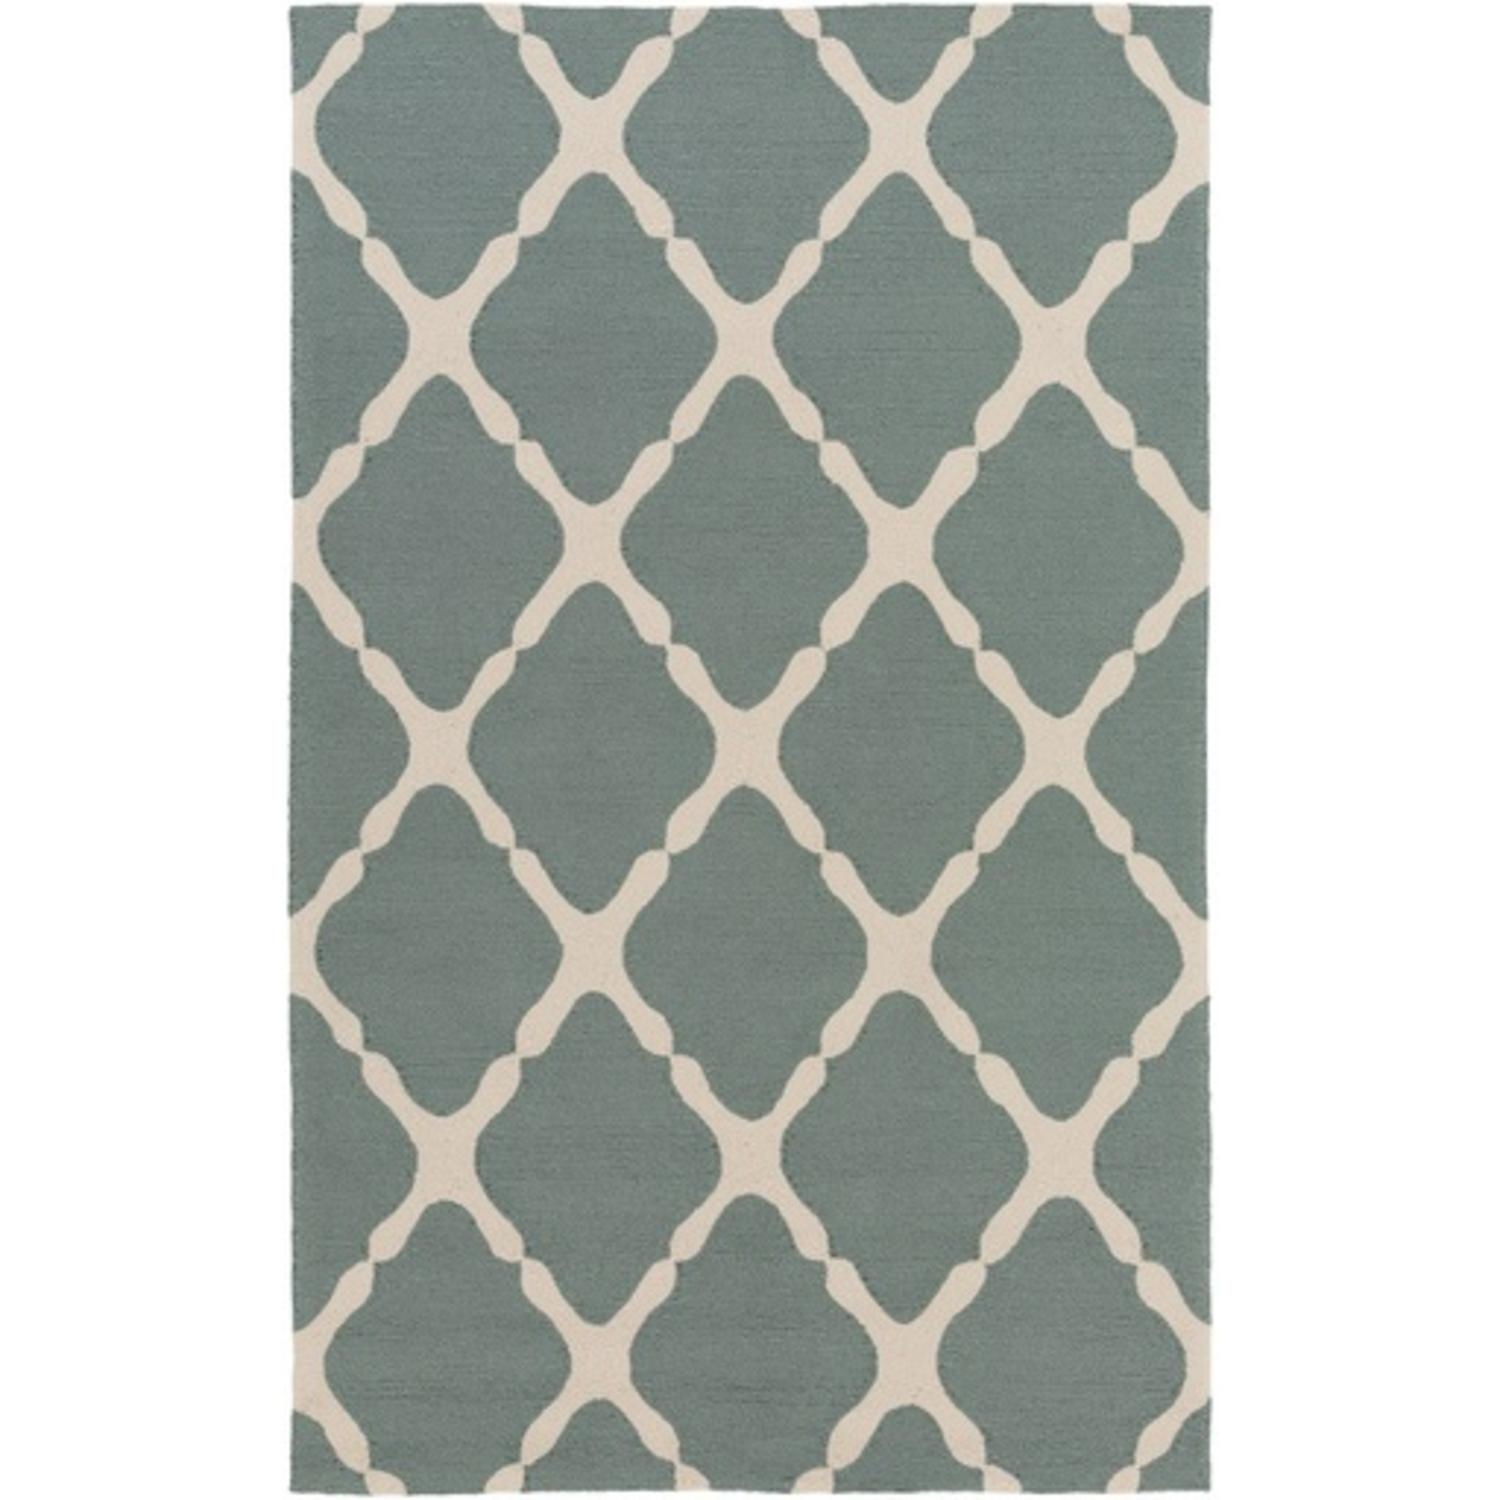 2' x 3' Mending Fences Moss Green and Light Gray Hand Hooked Area Throw Rug